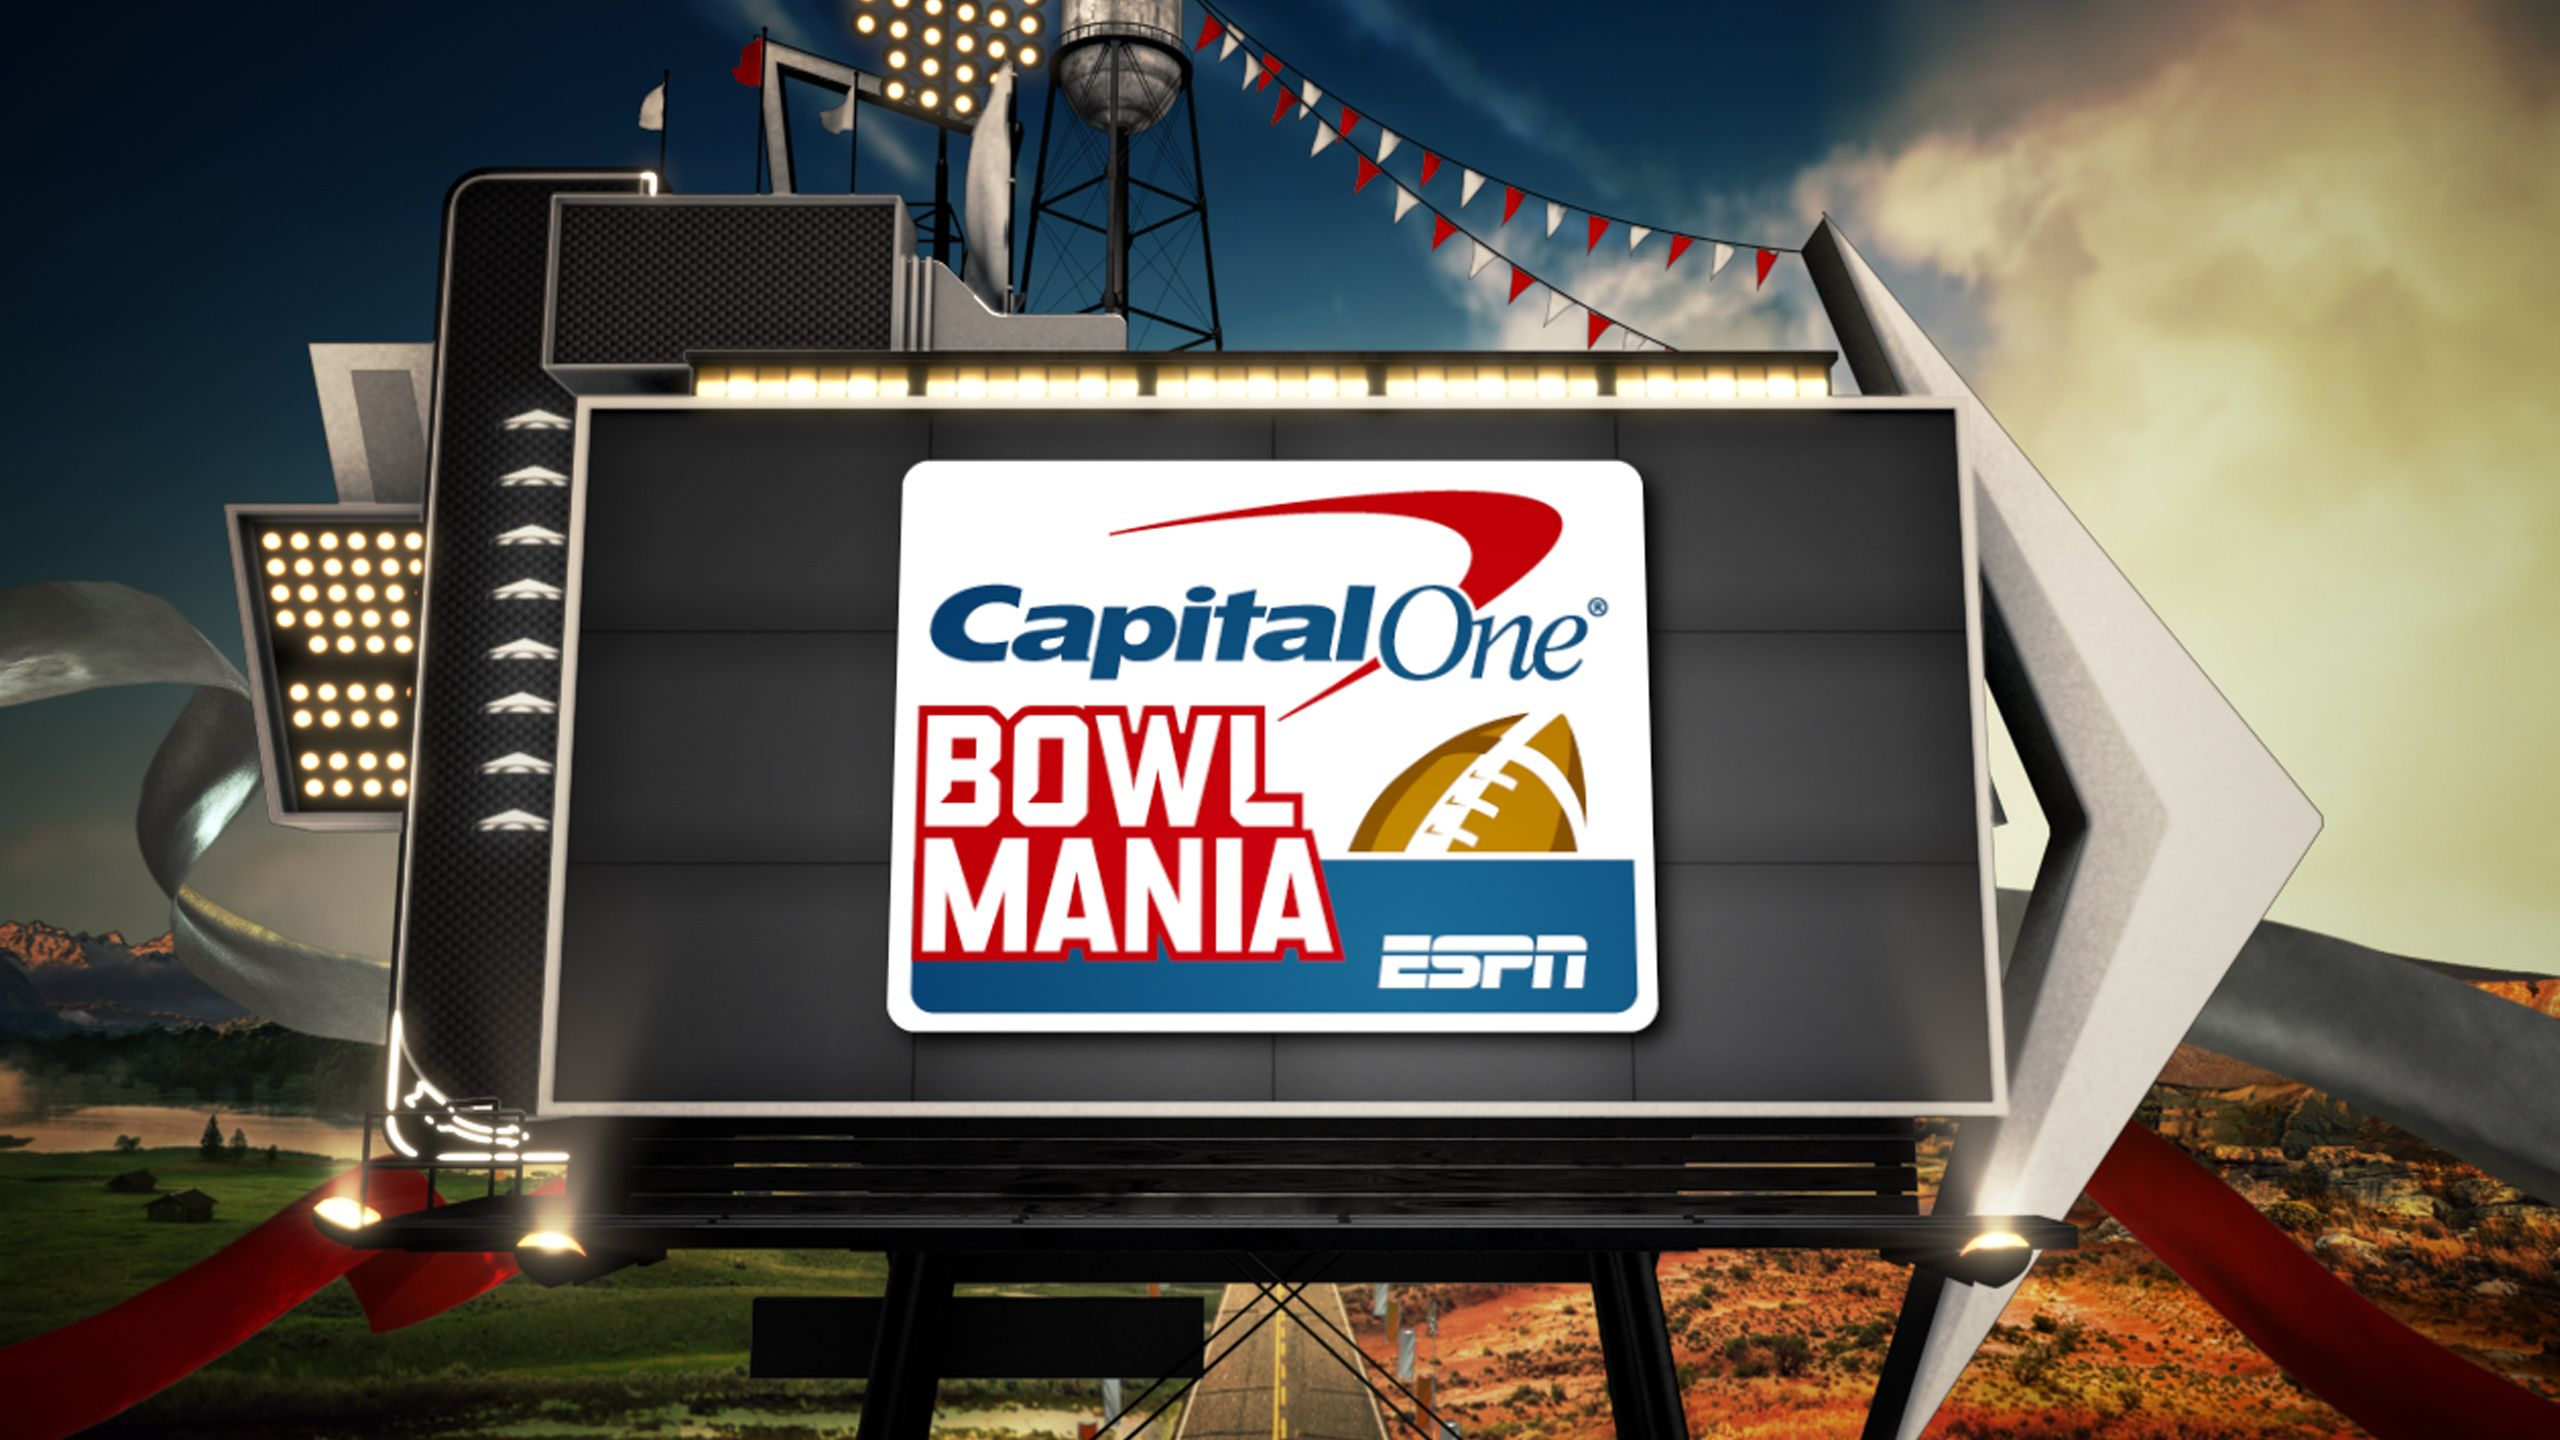 Capital One Bowl Mania